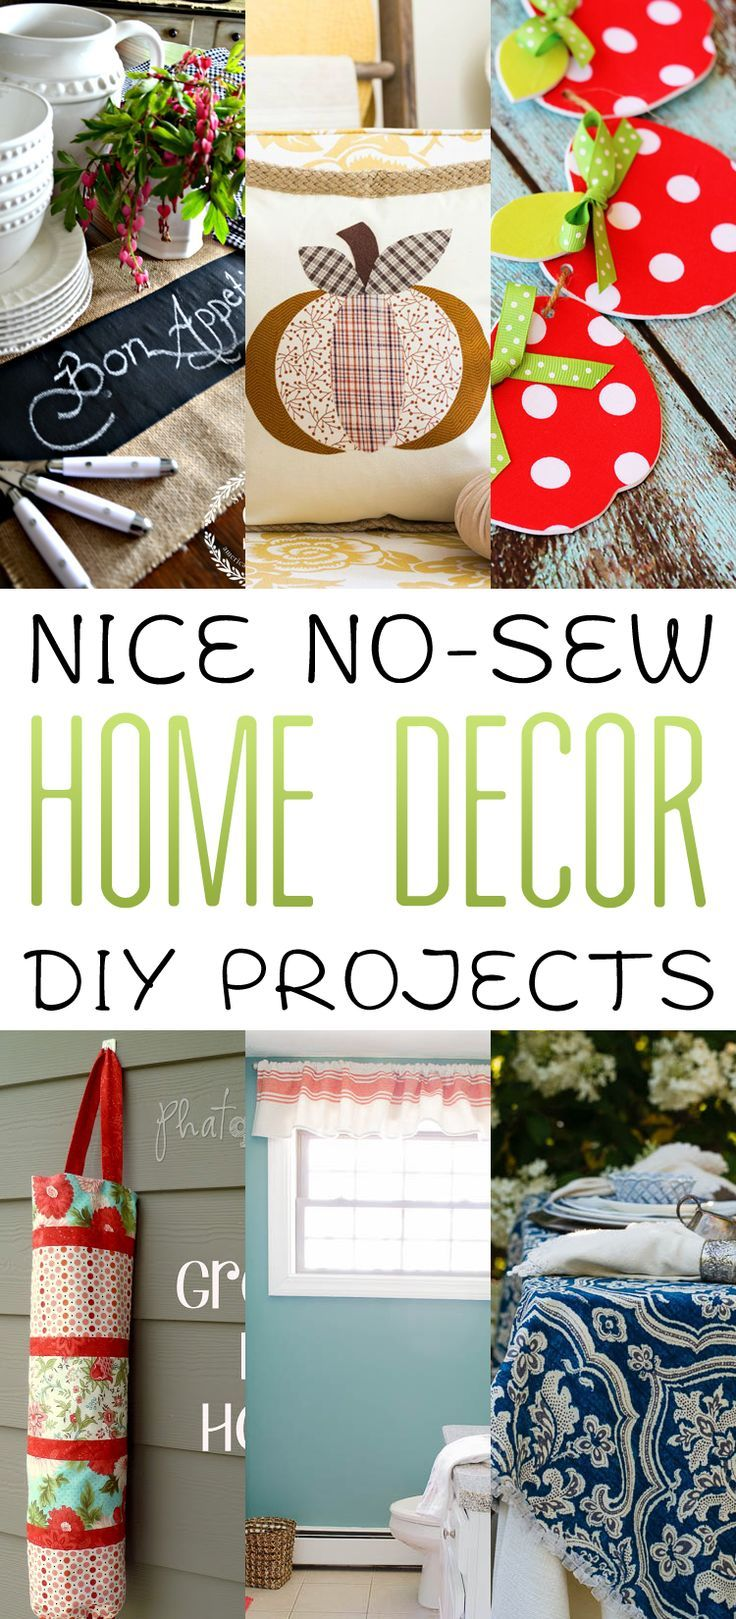 Nice No Sew Home Decor DIY Projects